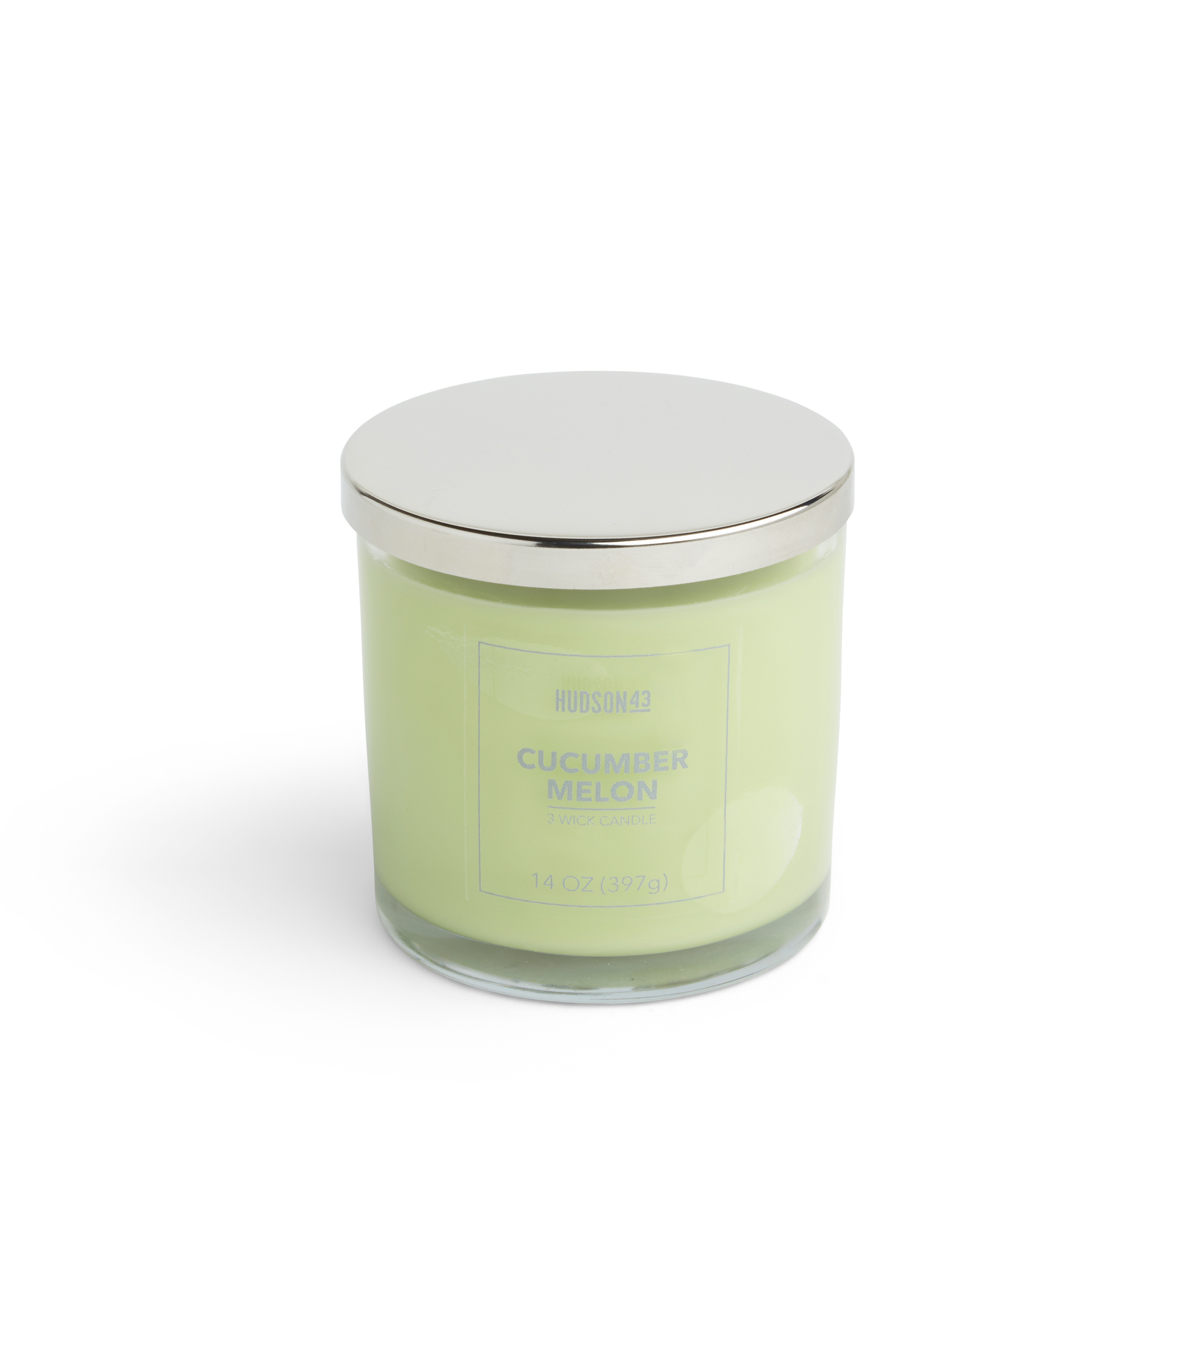 Hudson 43 Candle & Light 14 oz. Cucumber Melon Scented Jar Candle